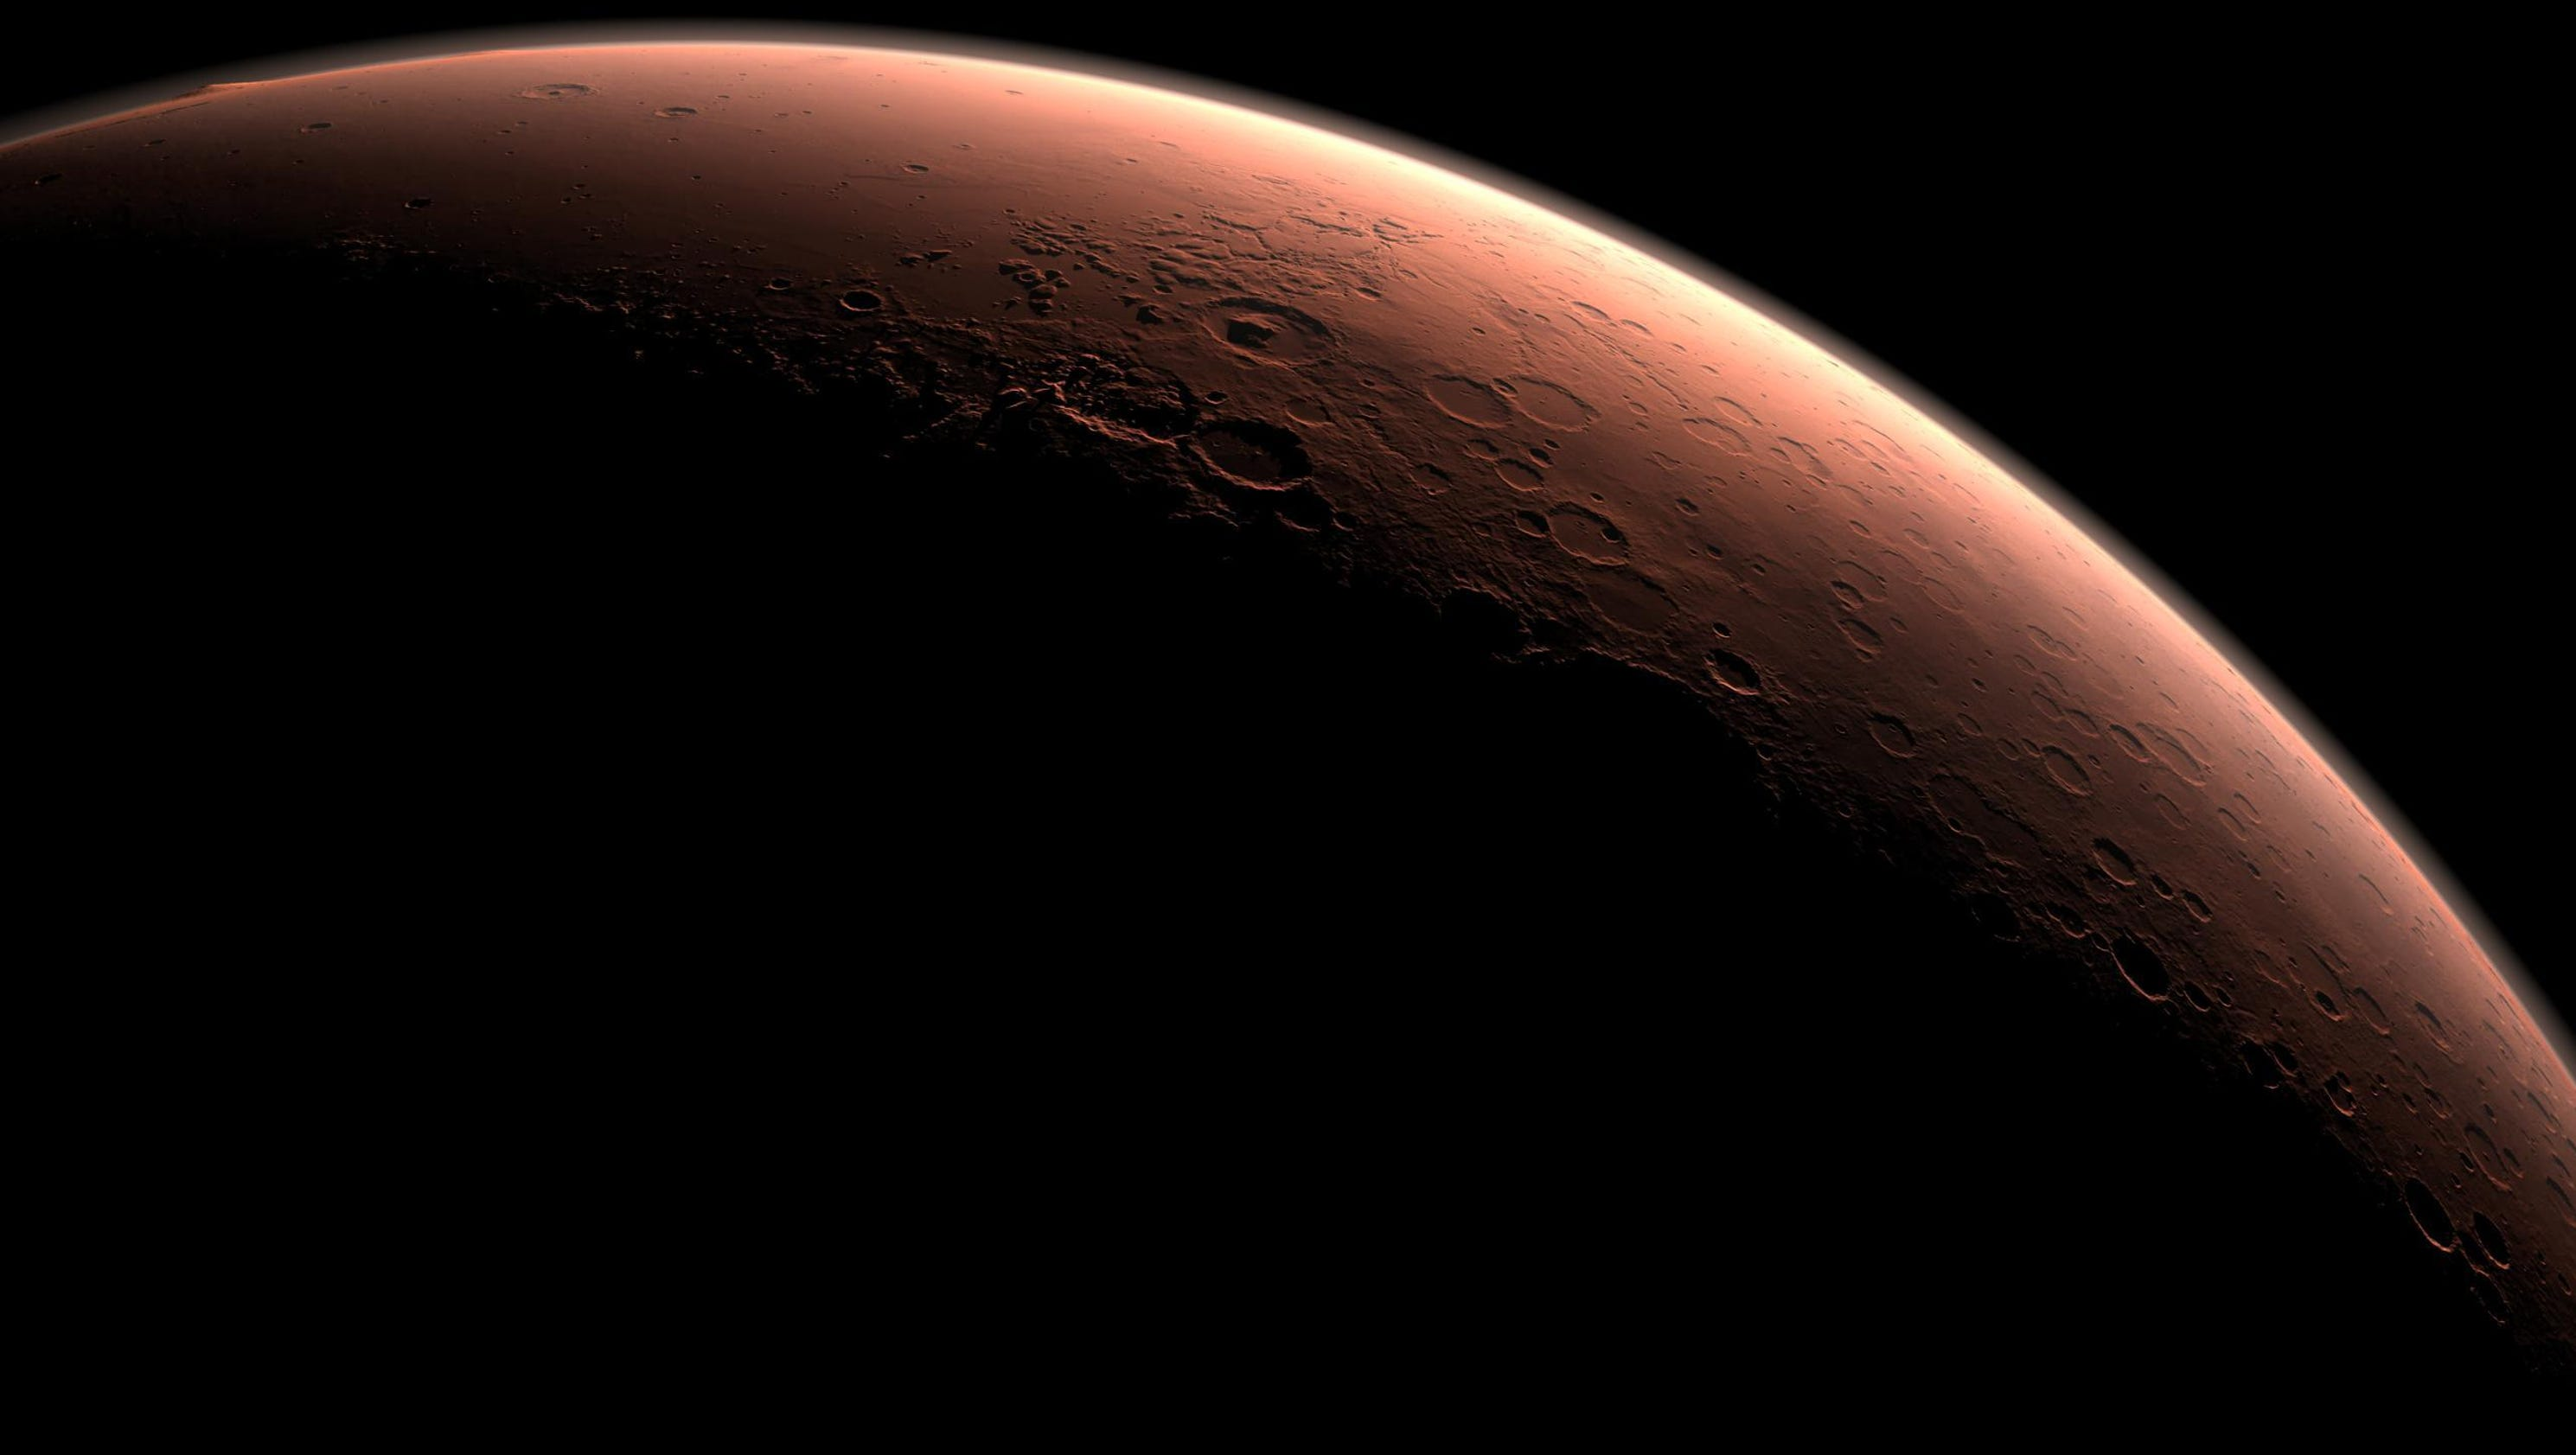 NASA to announce 'major science finding' about Mars